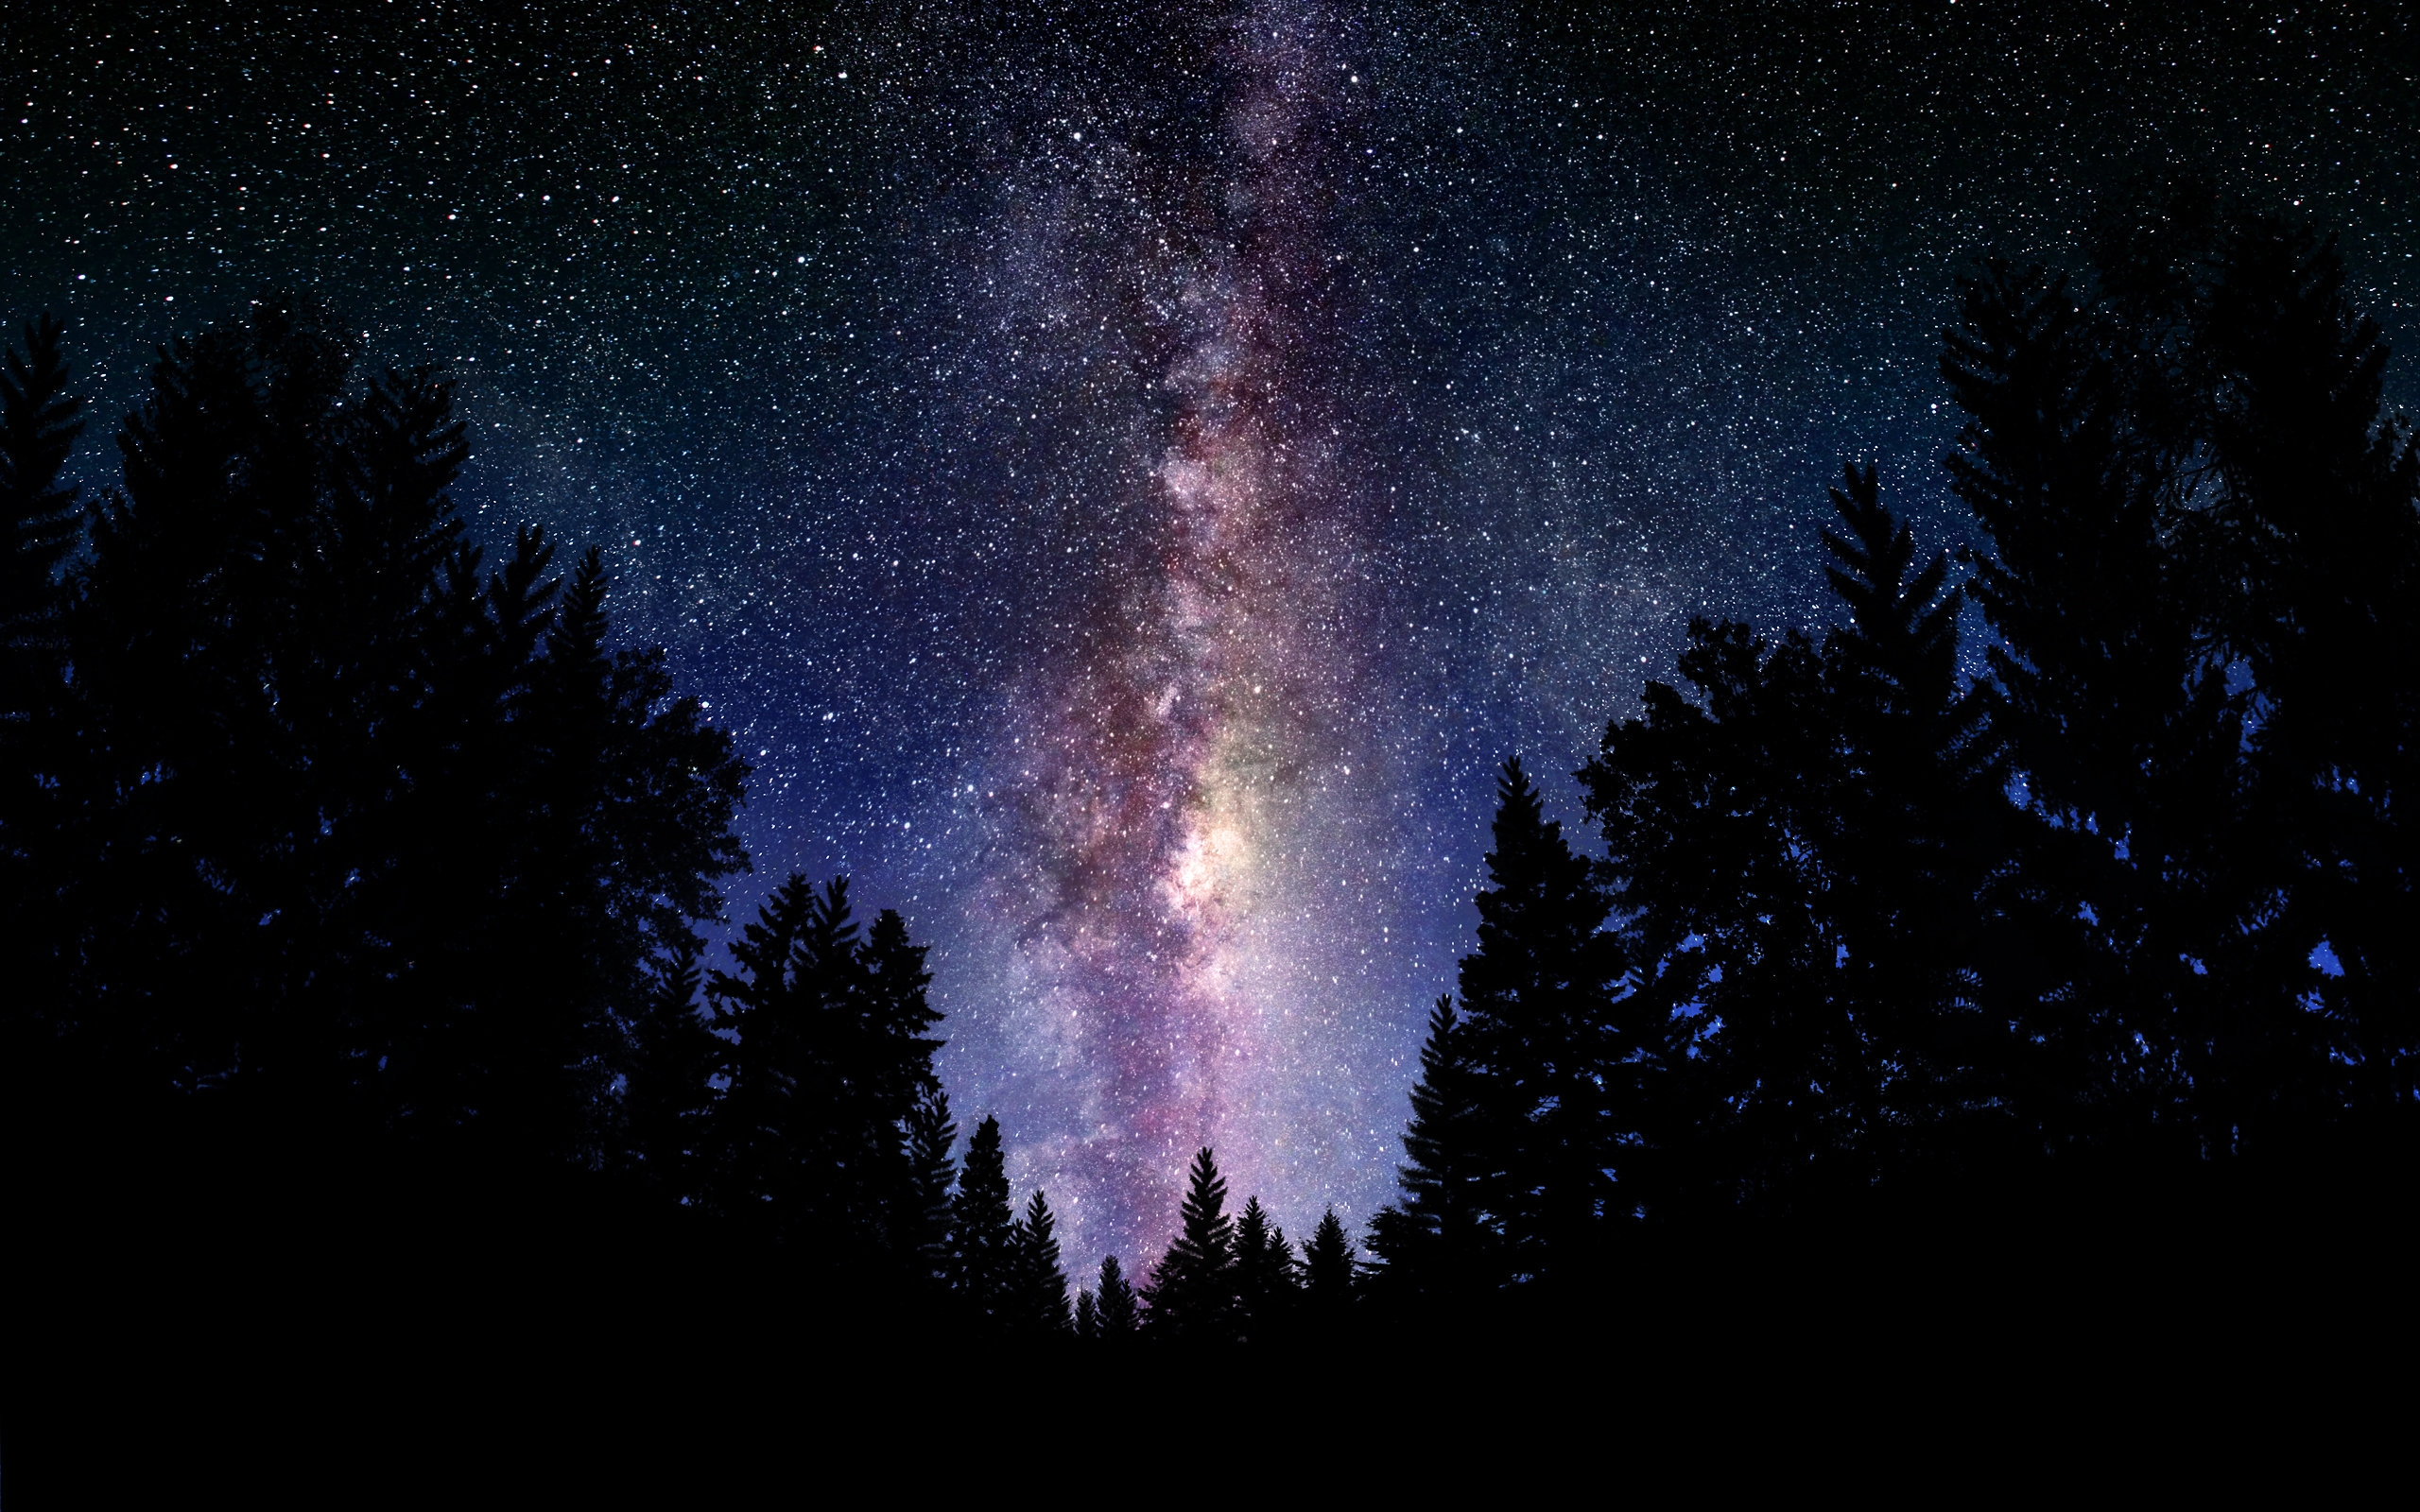 The Milky Way Galaxy Wallpapers HD 2560x1600